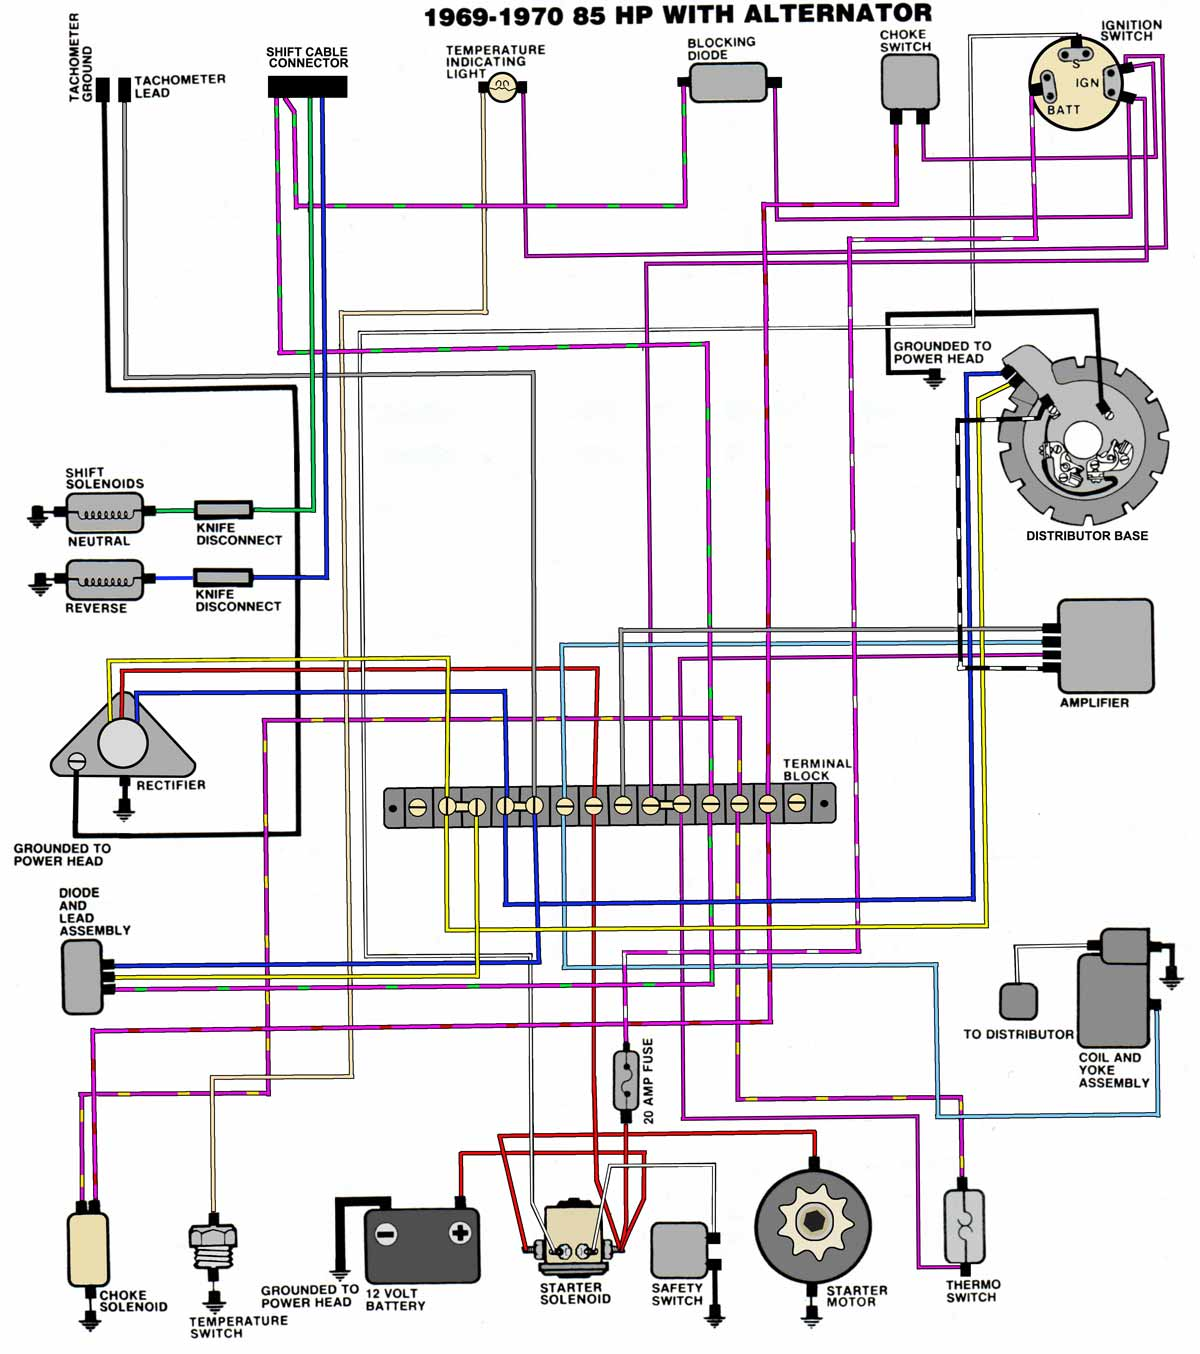 hight resolution of evinrude johnson outboard wiring diagrams mastertech marine johnson outboard ignition switch wiring 1972 johnson outboard wiring diagram 50 hp